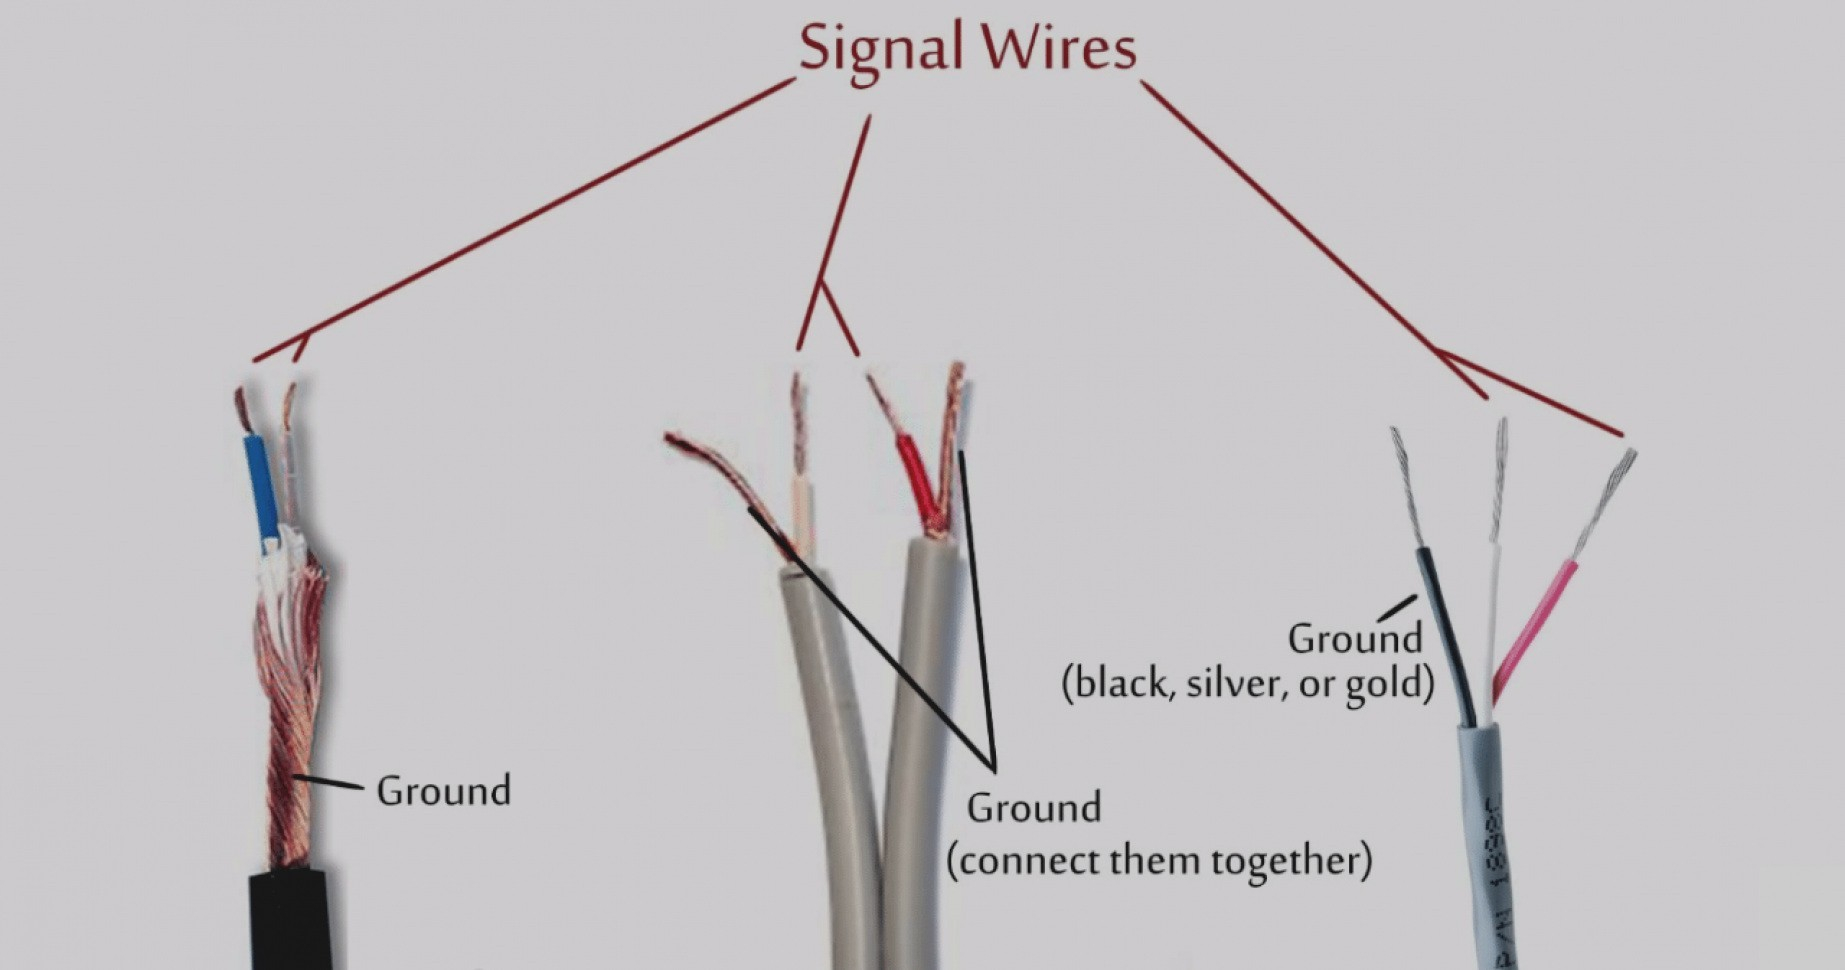 Usb Wiring Diagram For Audio Cable | Manual E-Books - Wiring Diagram To Connect Usb To Headphone Jack